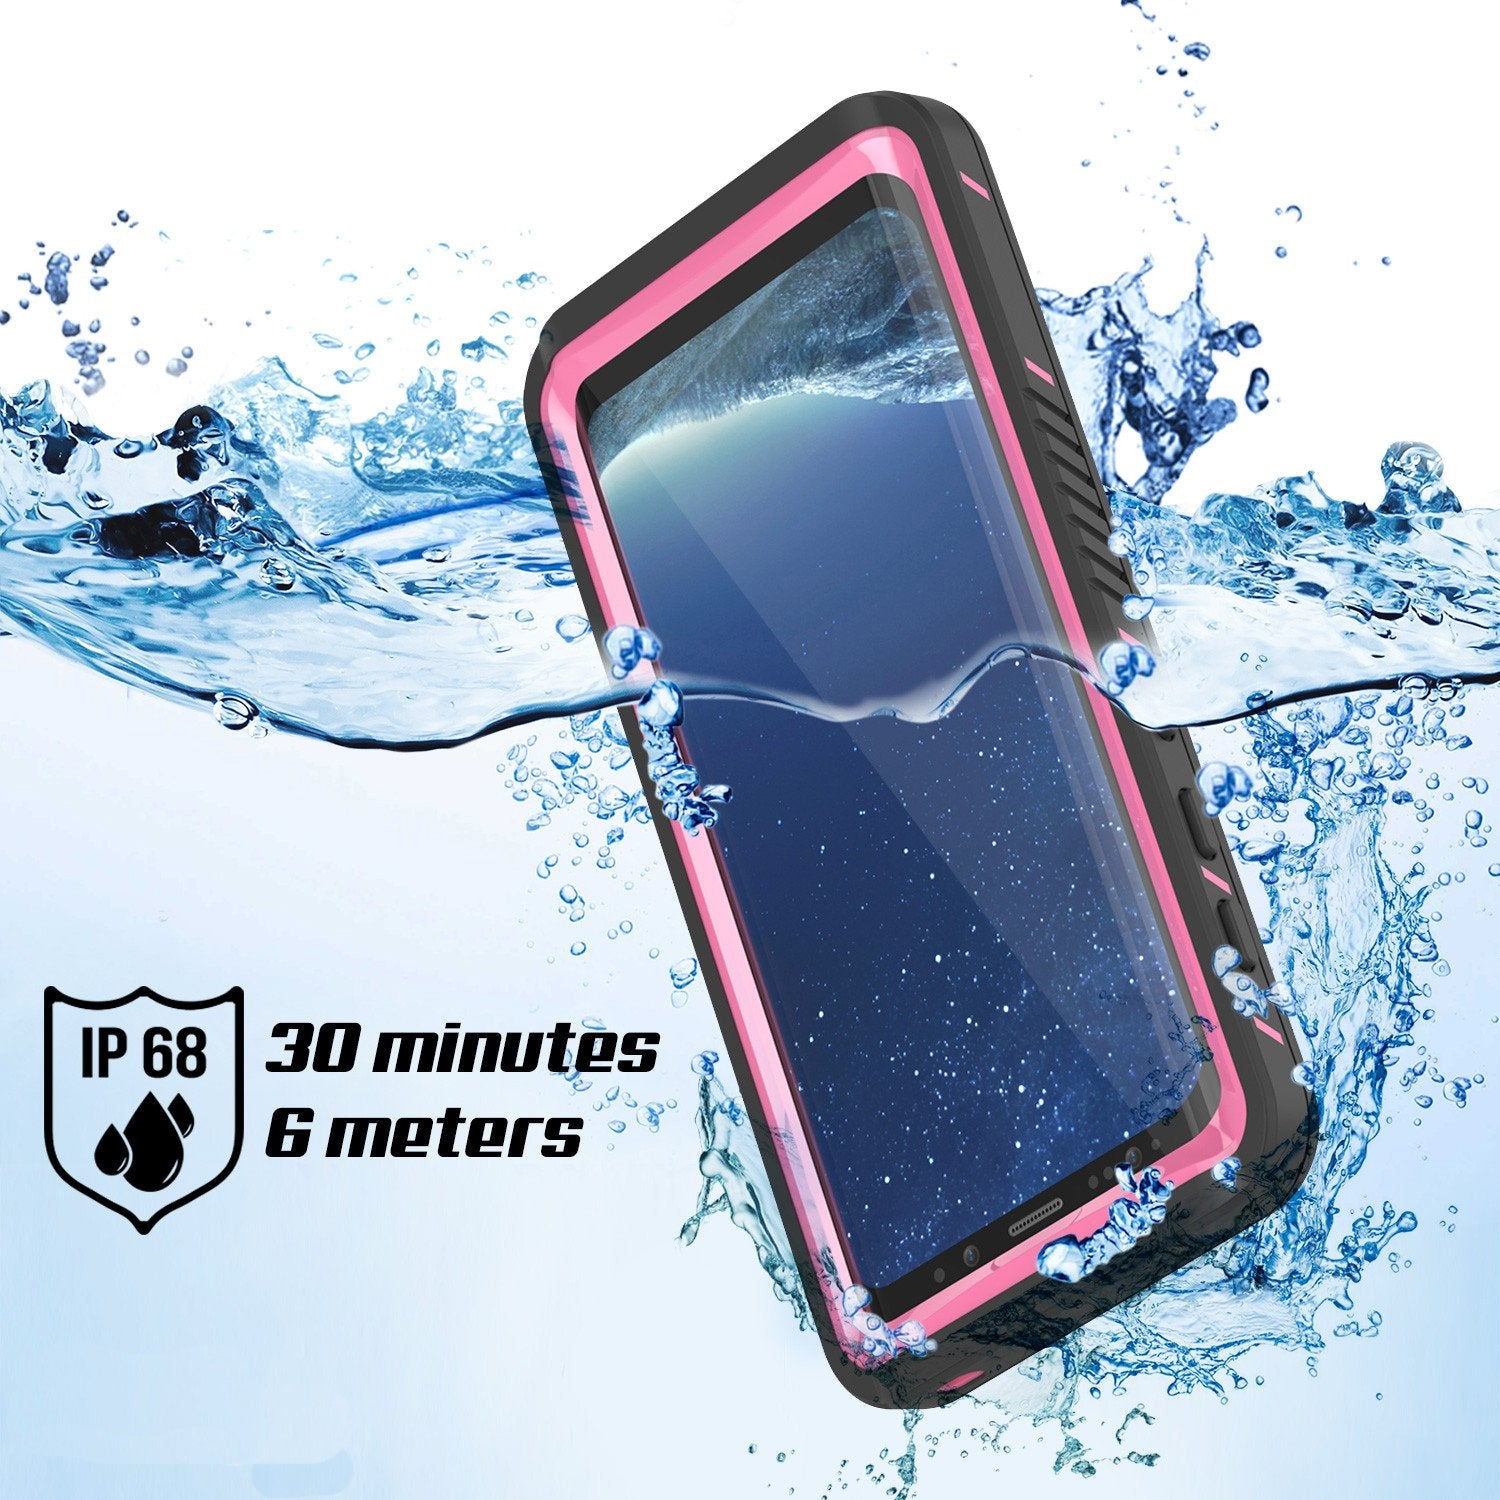 Galaxy S8 Waterproof Case, Punkcase [Extreme Series] [Slim Fit] [IP68 Certified] [Shockproof] [Snowproof] [Dirproof] Armor Cover W/ Built In Screen Protector for Samsung Galaxy S8 [Pink]